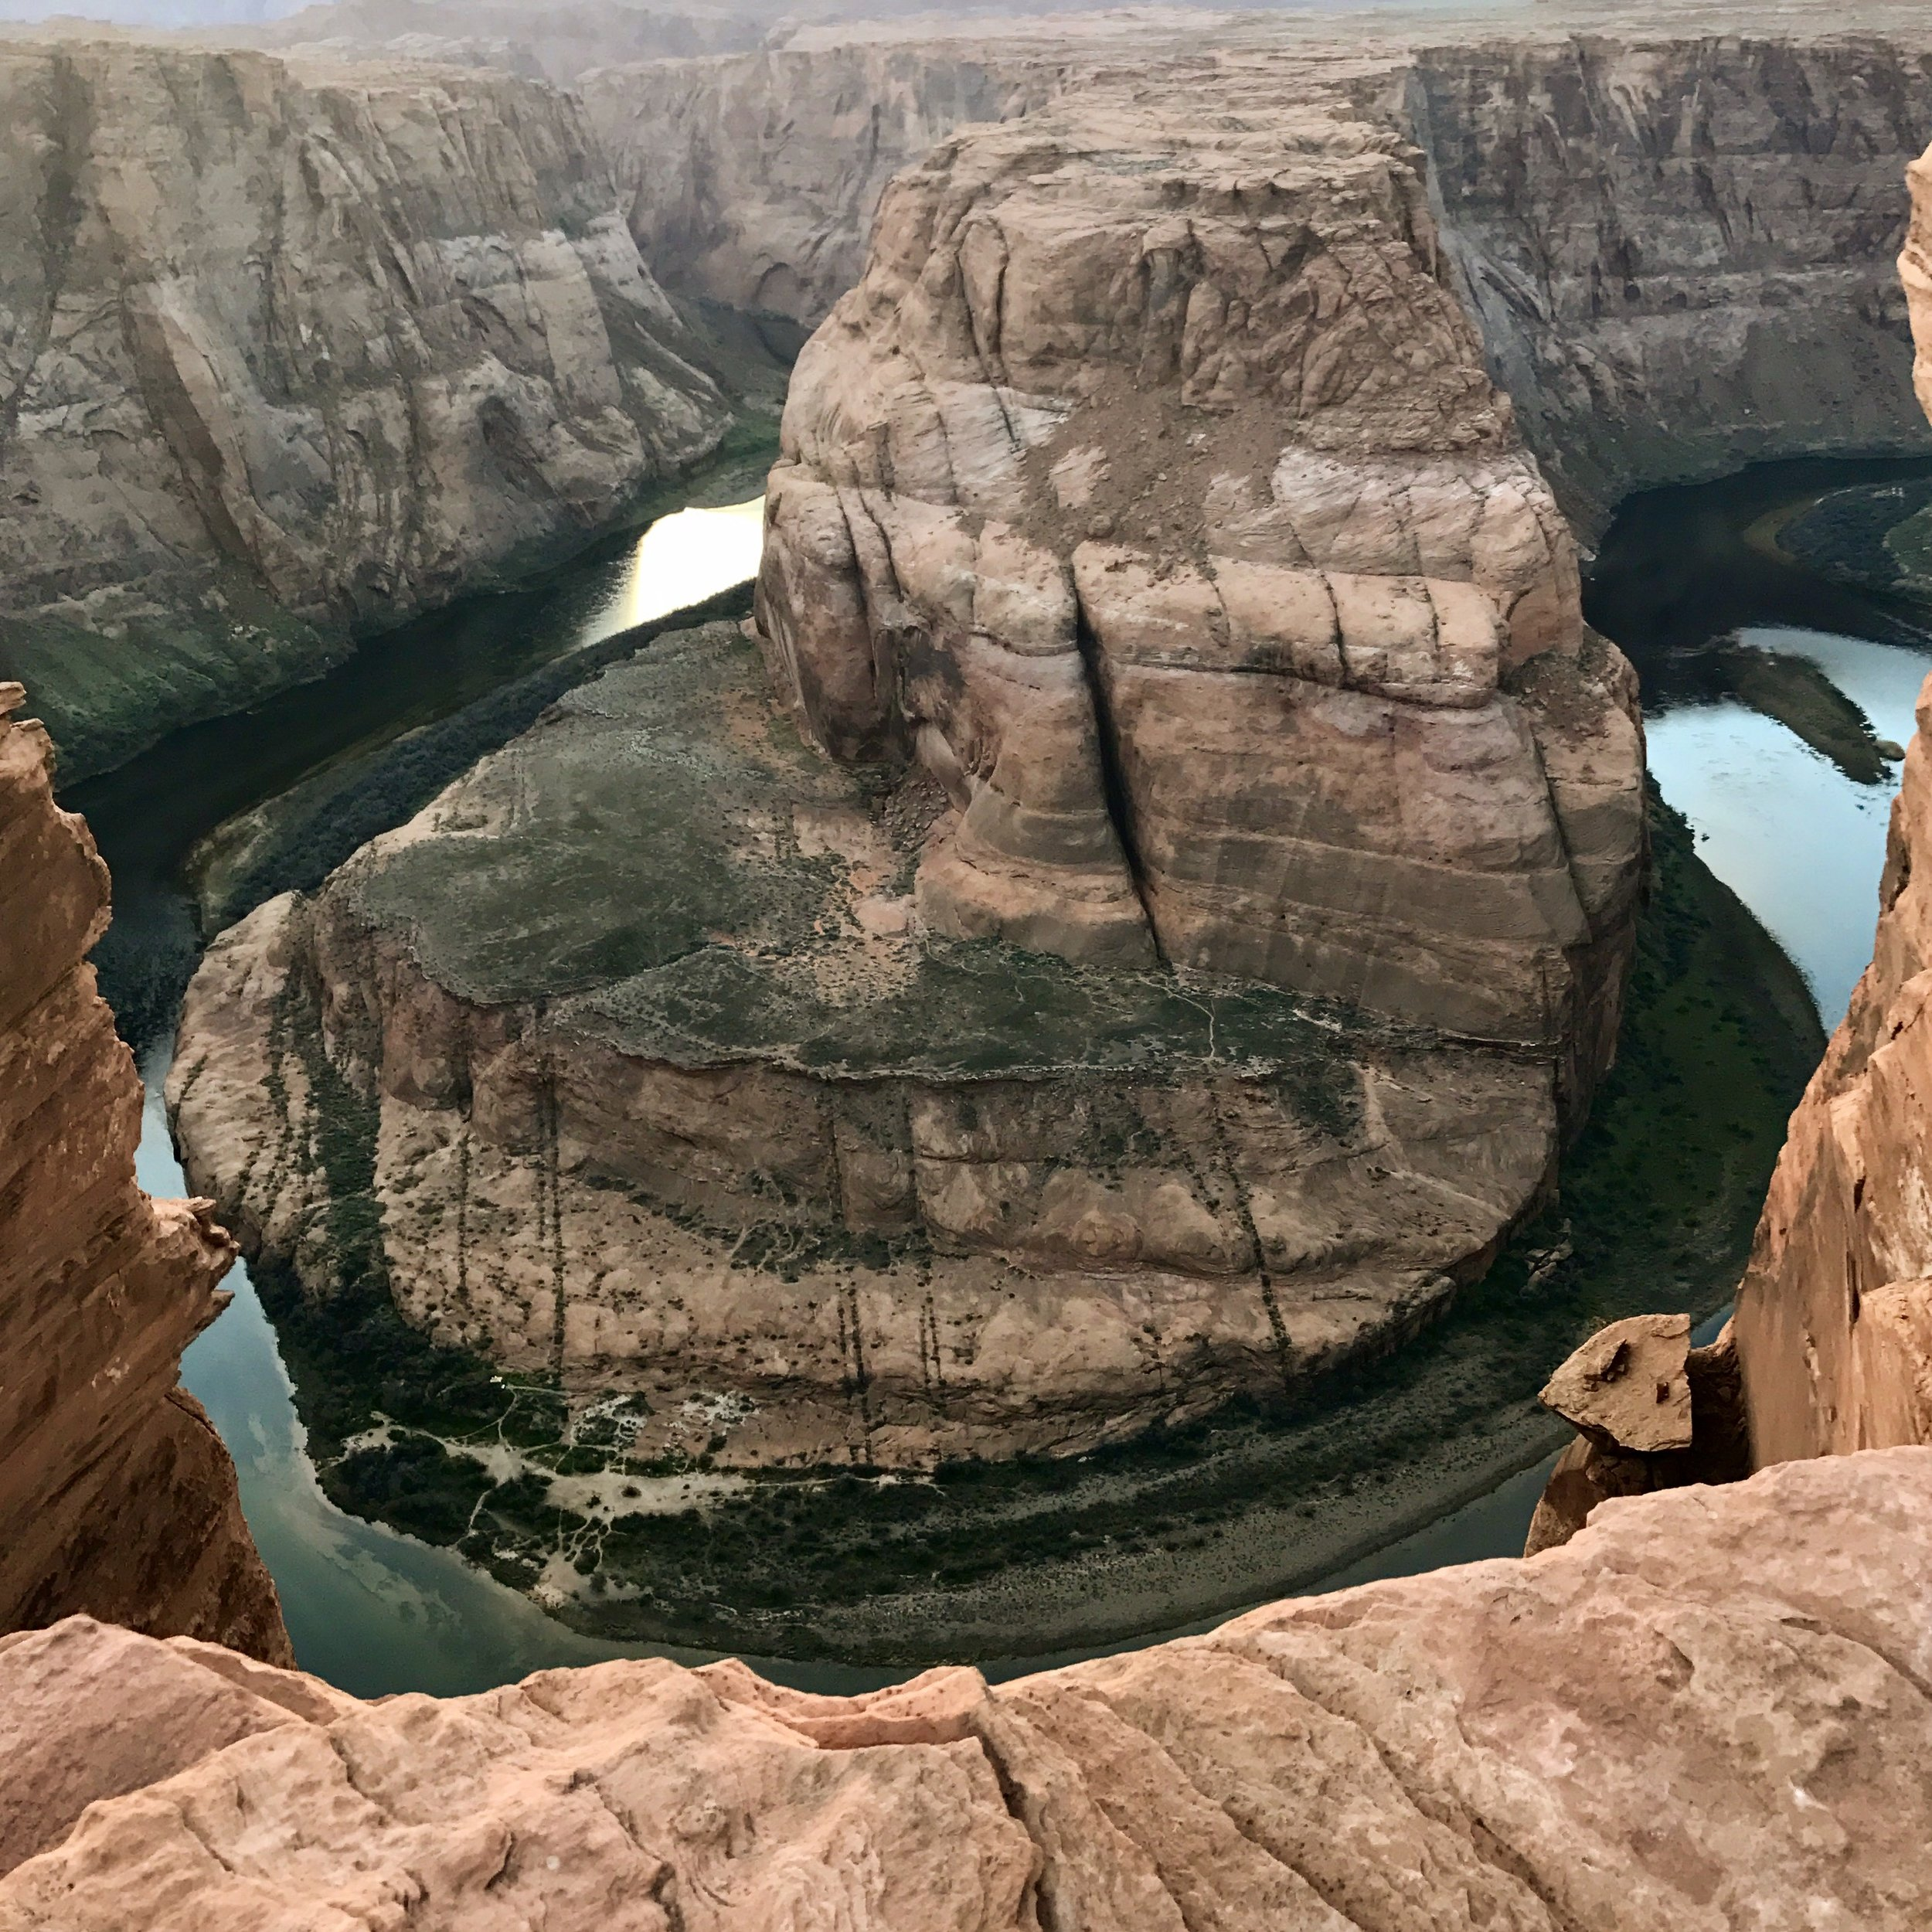 Horseshoe Bend at sunset. Only an hours drive from Kanab.